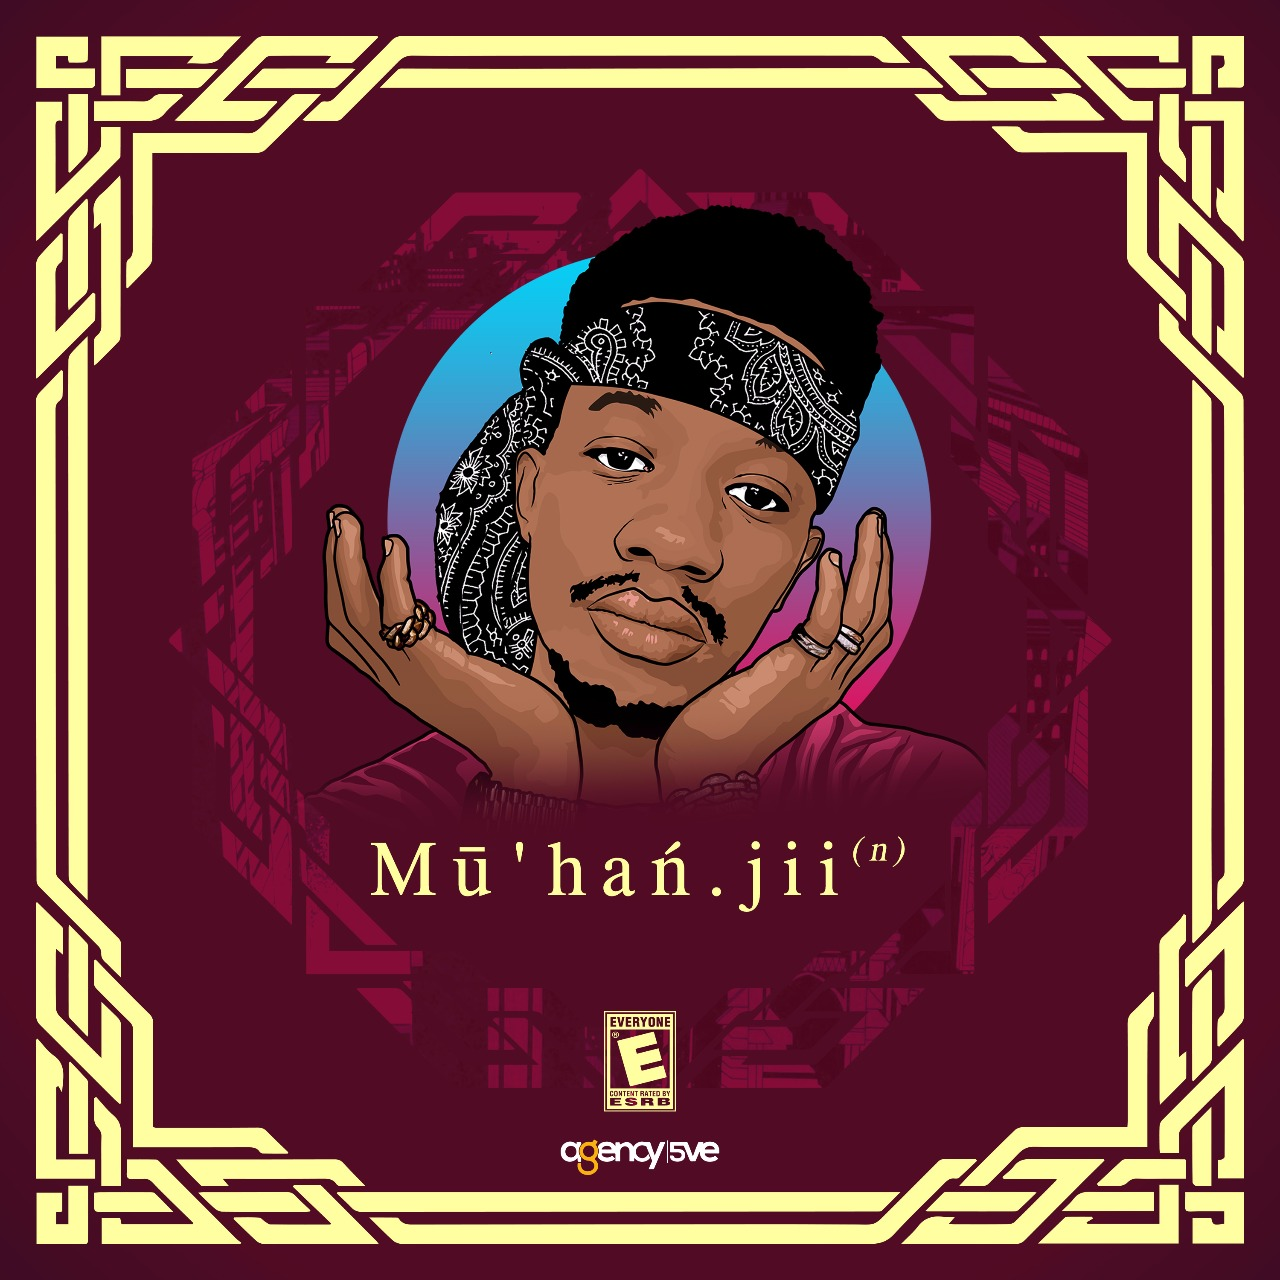 Muhanjii's cover fro his self titled EP. photo credit: courtesy